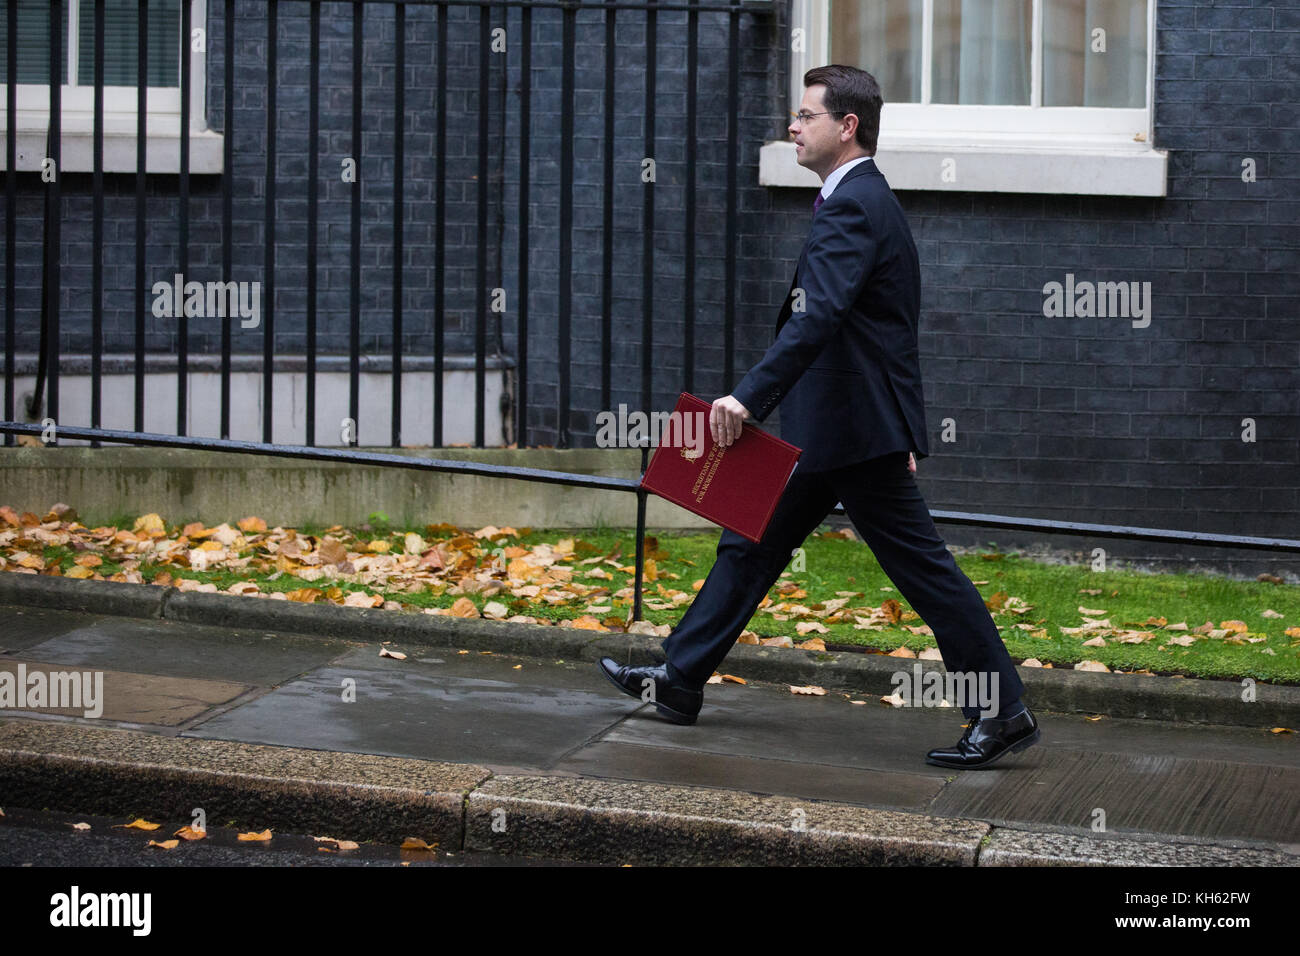 London, UK. 14th November, 2017. James Brokenshire MP, Secretary of State for Northern Ireland, arrives at 10 Downing - Stock Image